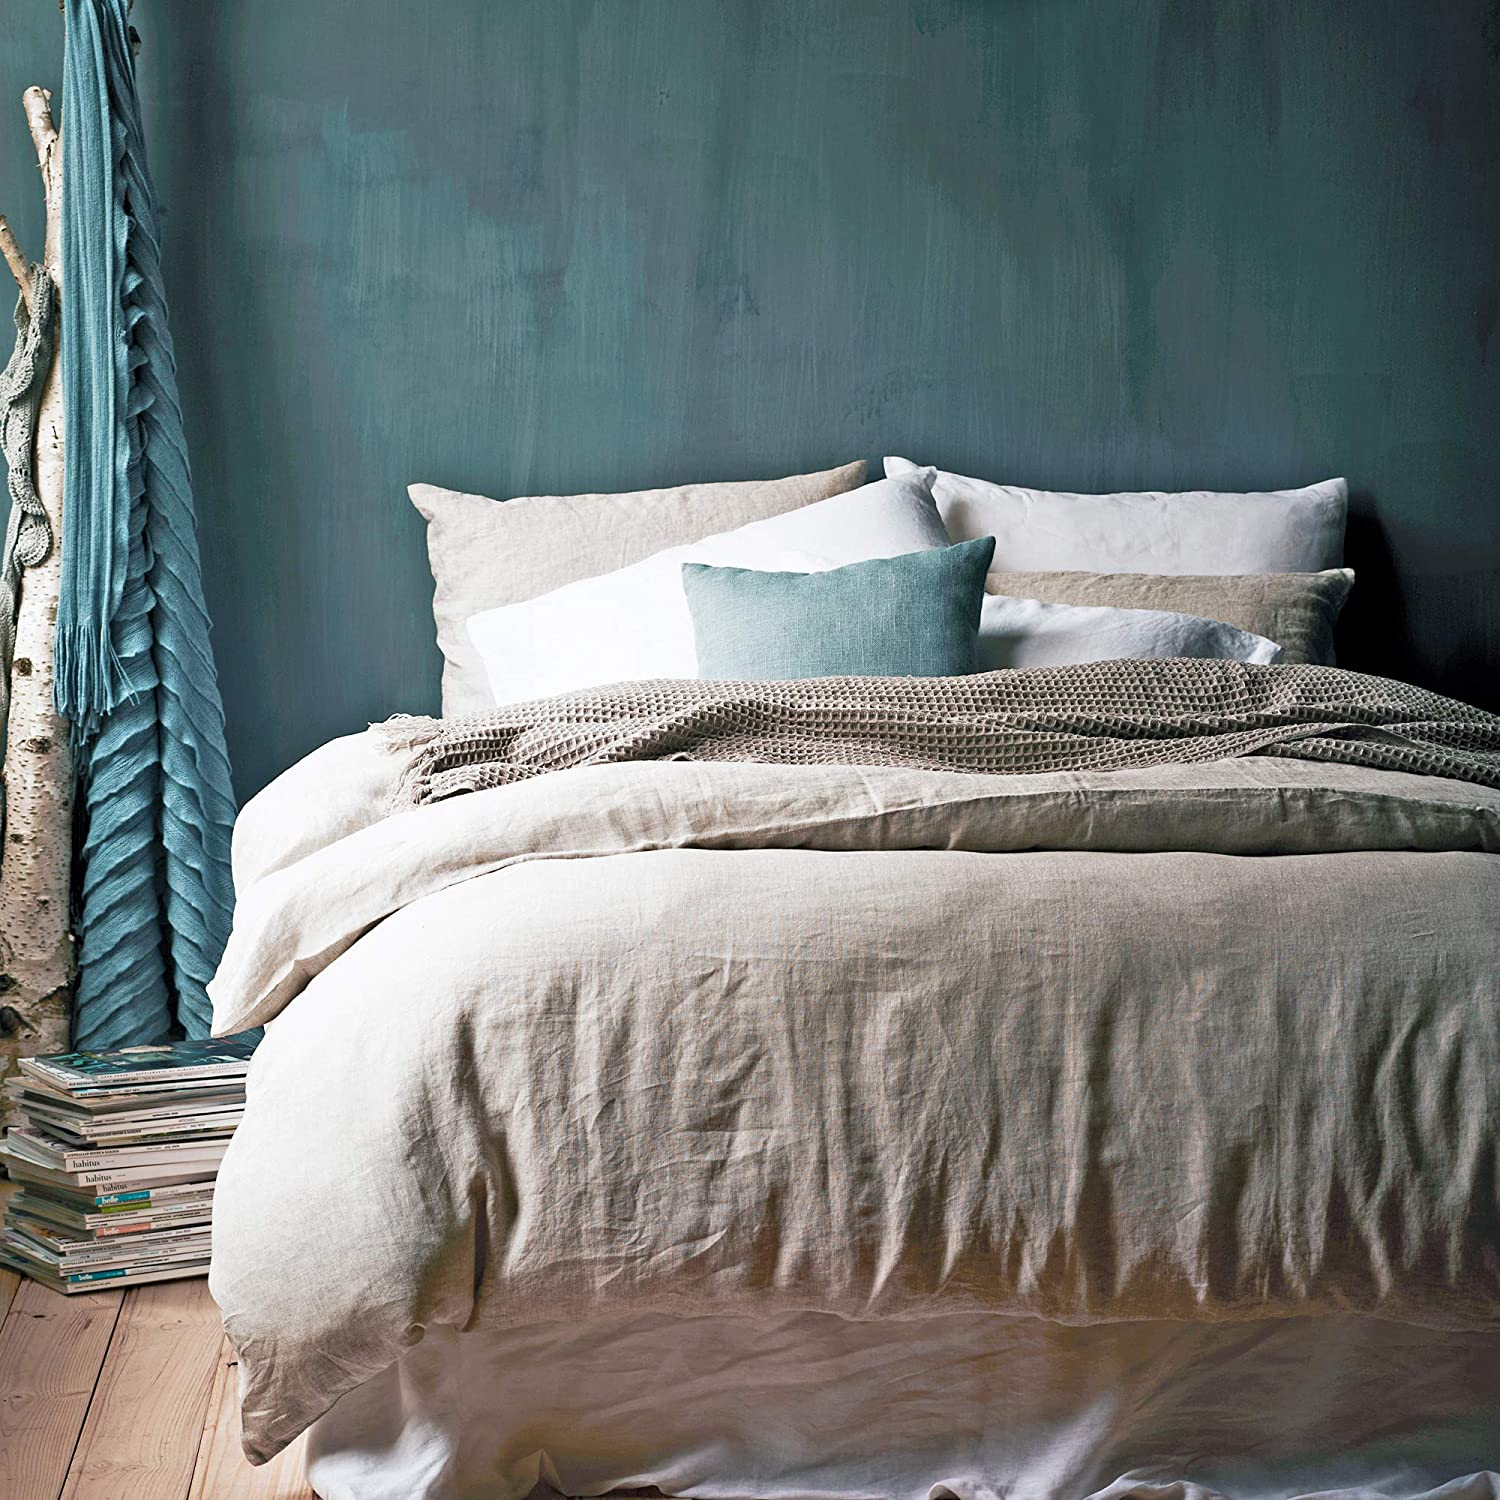 Duvet Cover Size 100/% Linen Twin Duvet Cover Levtex Home Washed Linen in Spa 66 x 88in.